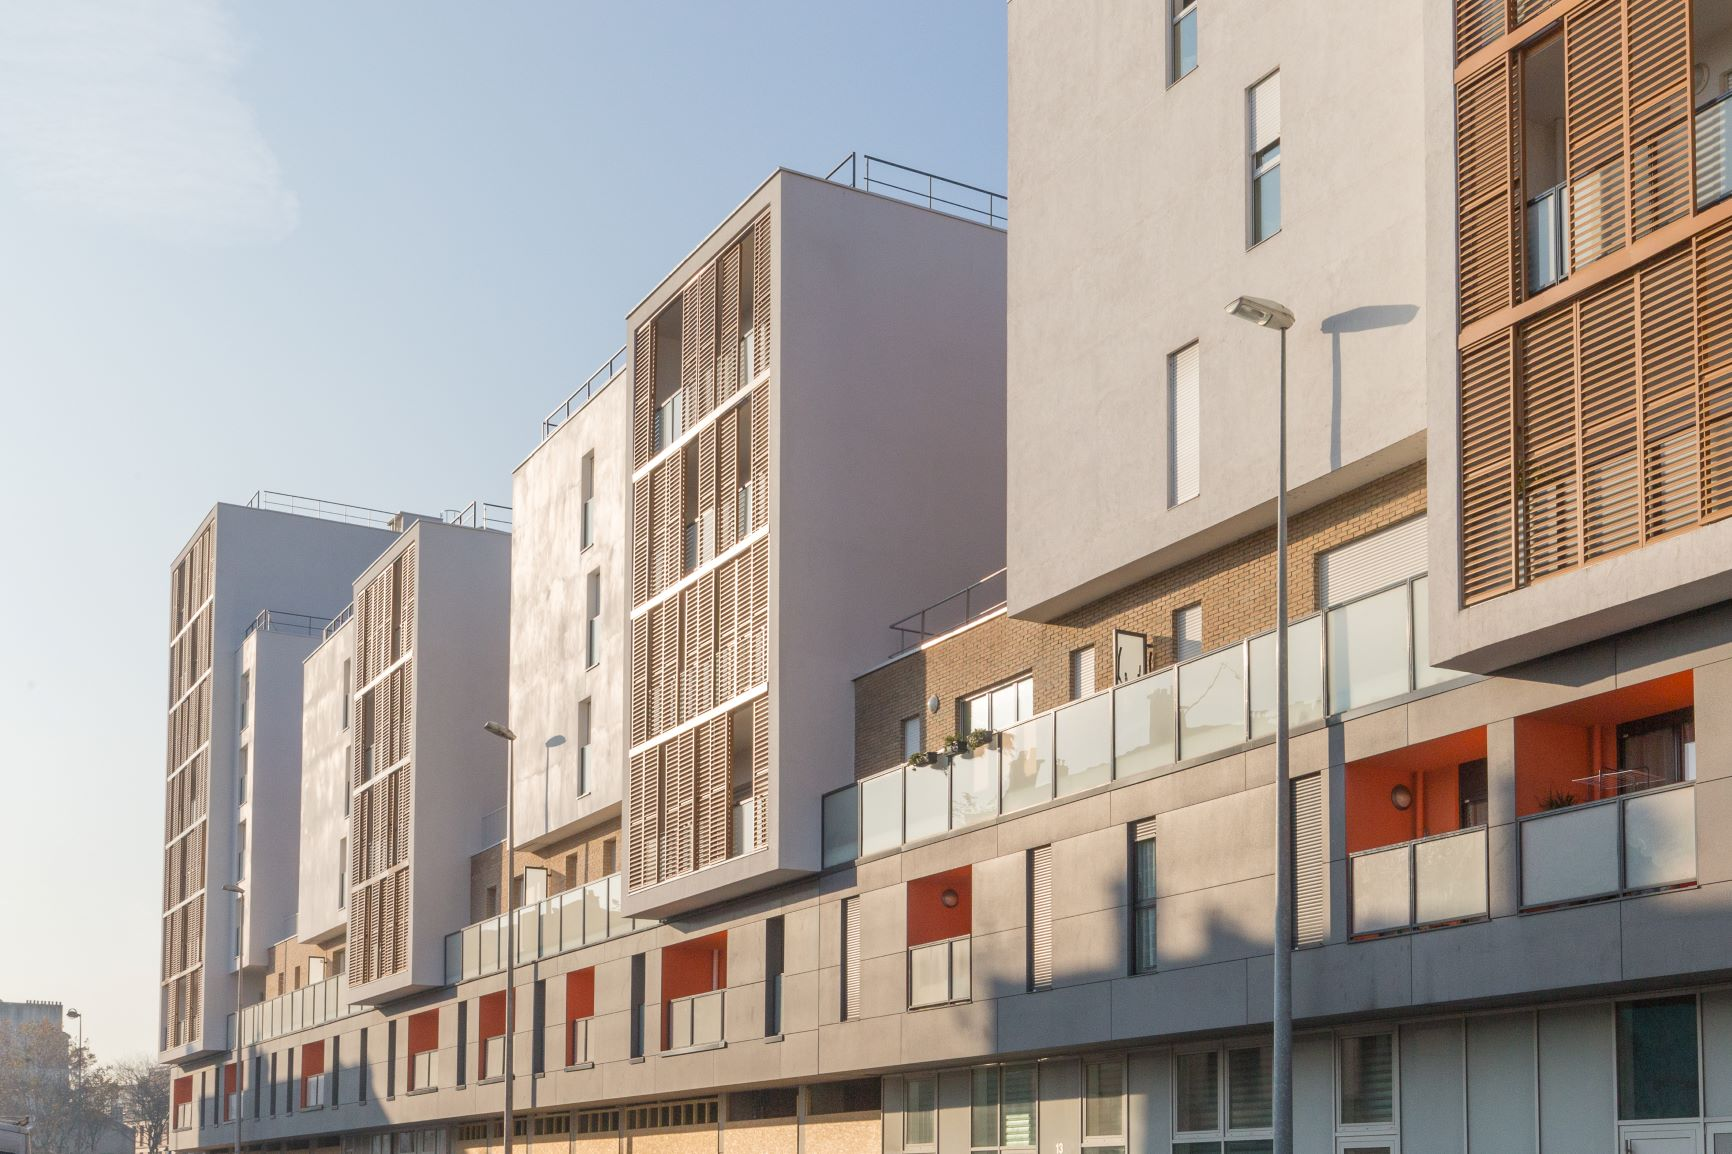 ASNIERES PERI logement interconstruction